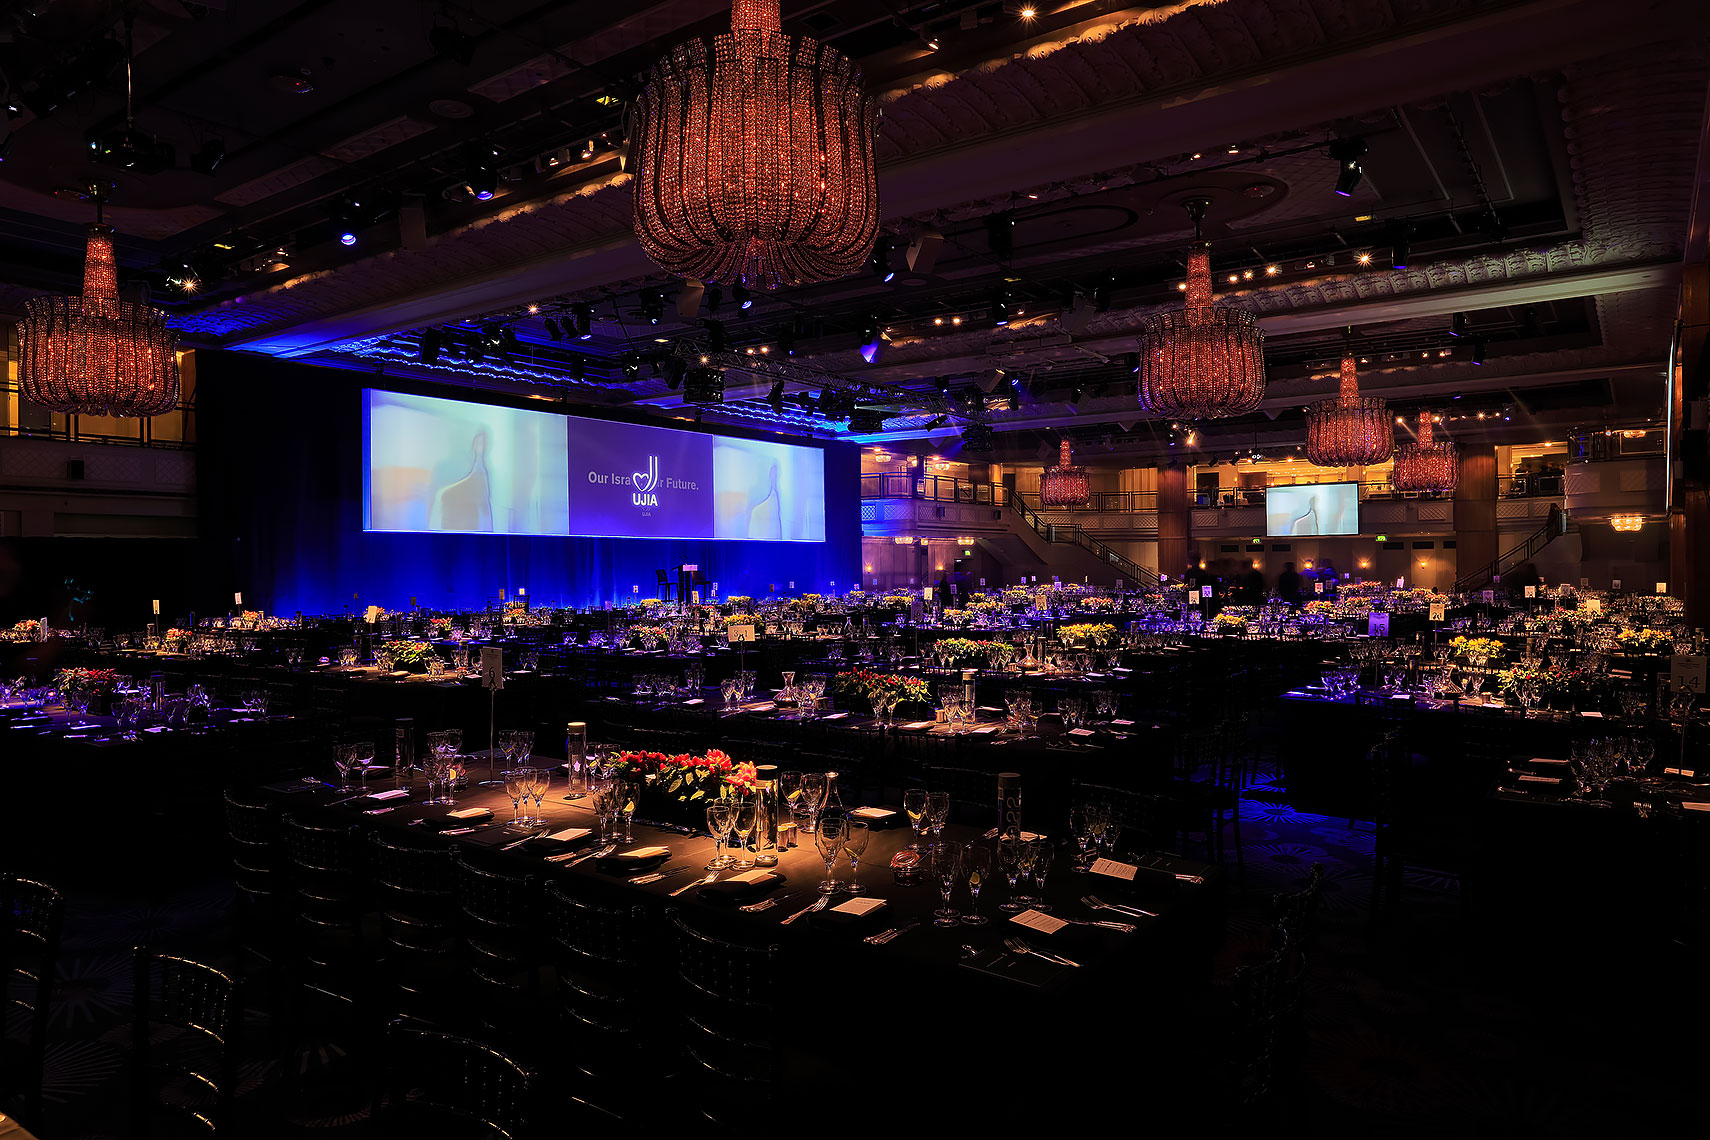 Interior event ballroom space with tables set up for evening event, decorated with floral bouquets and dramatic lighting